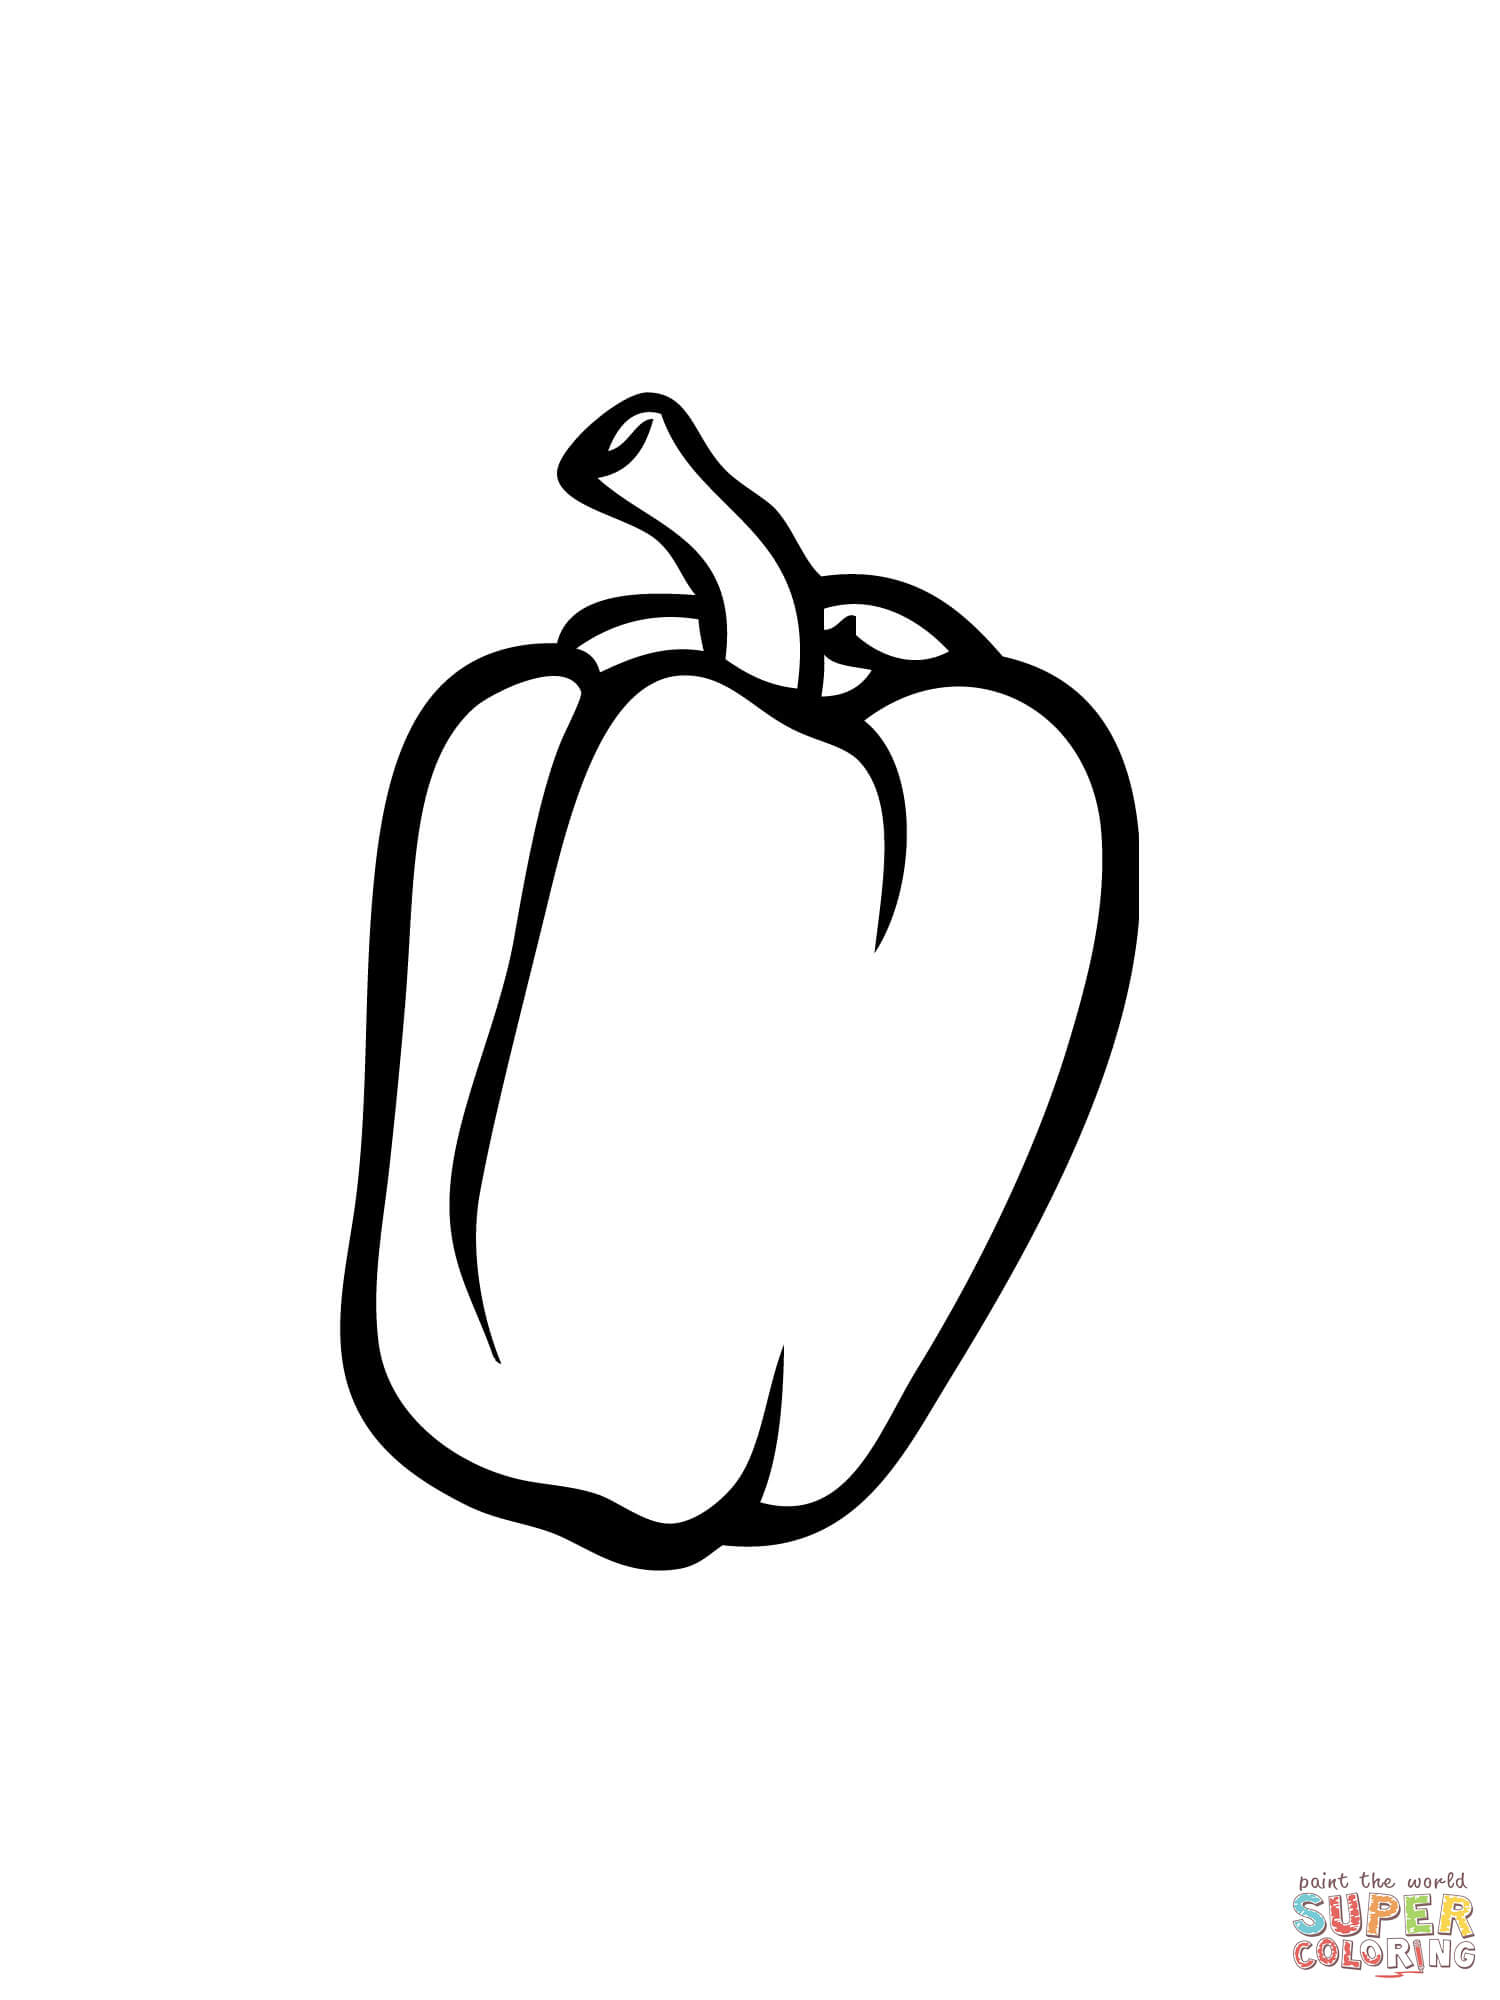 Pepper Coloring Page : pepper, coloring, Pepper, Coloring, Printable, Pages